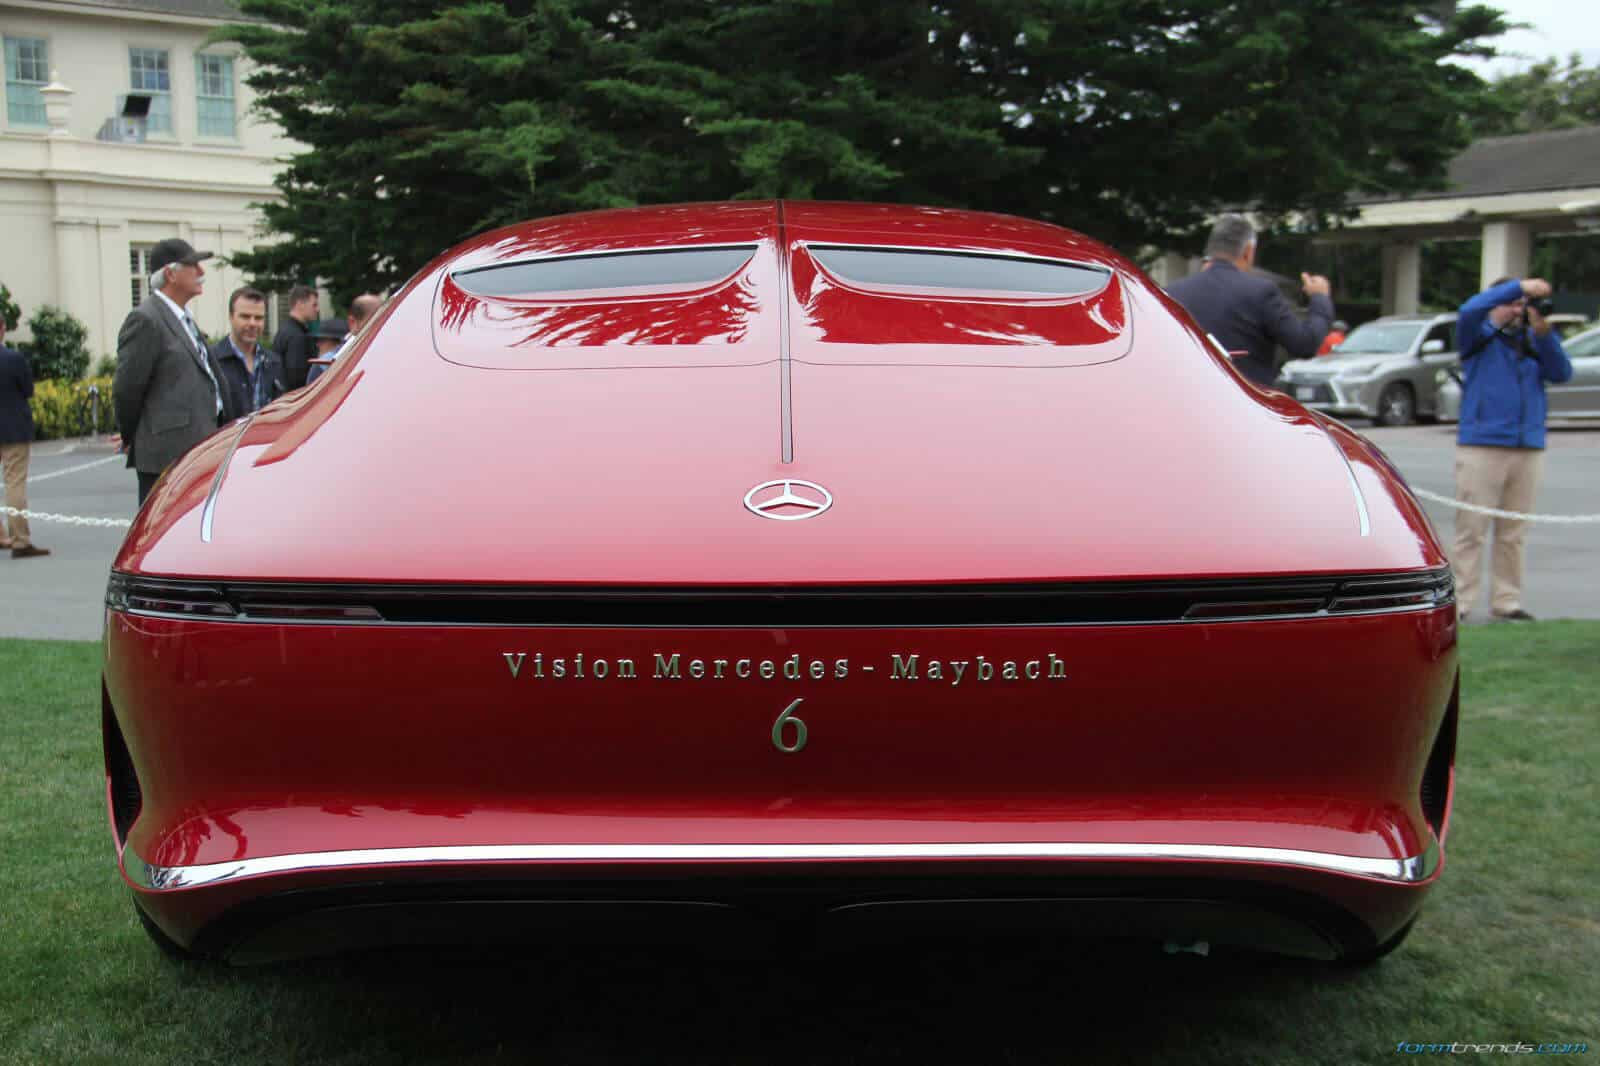 Vision mercedes maybach 6 car explained by design vp for Mercedes benz 6